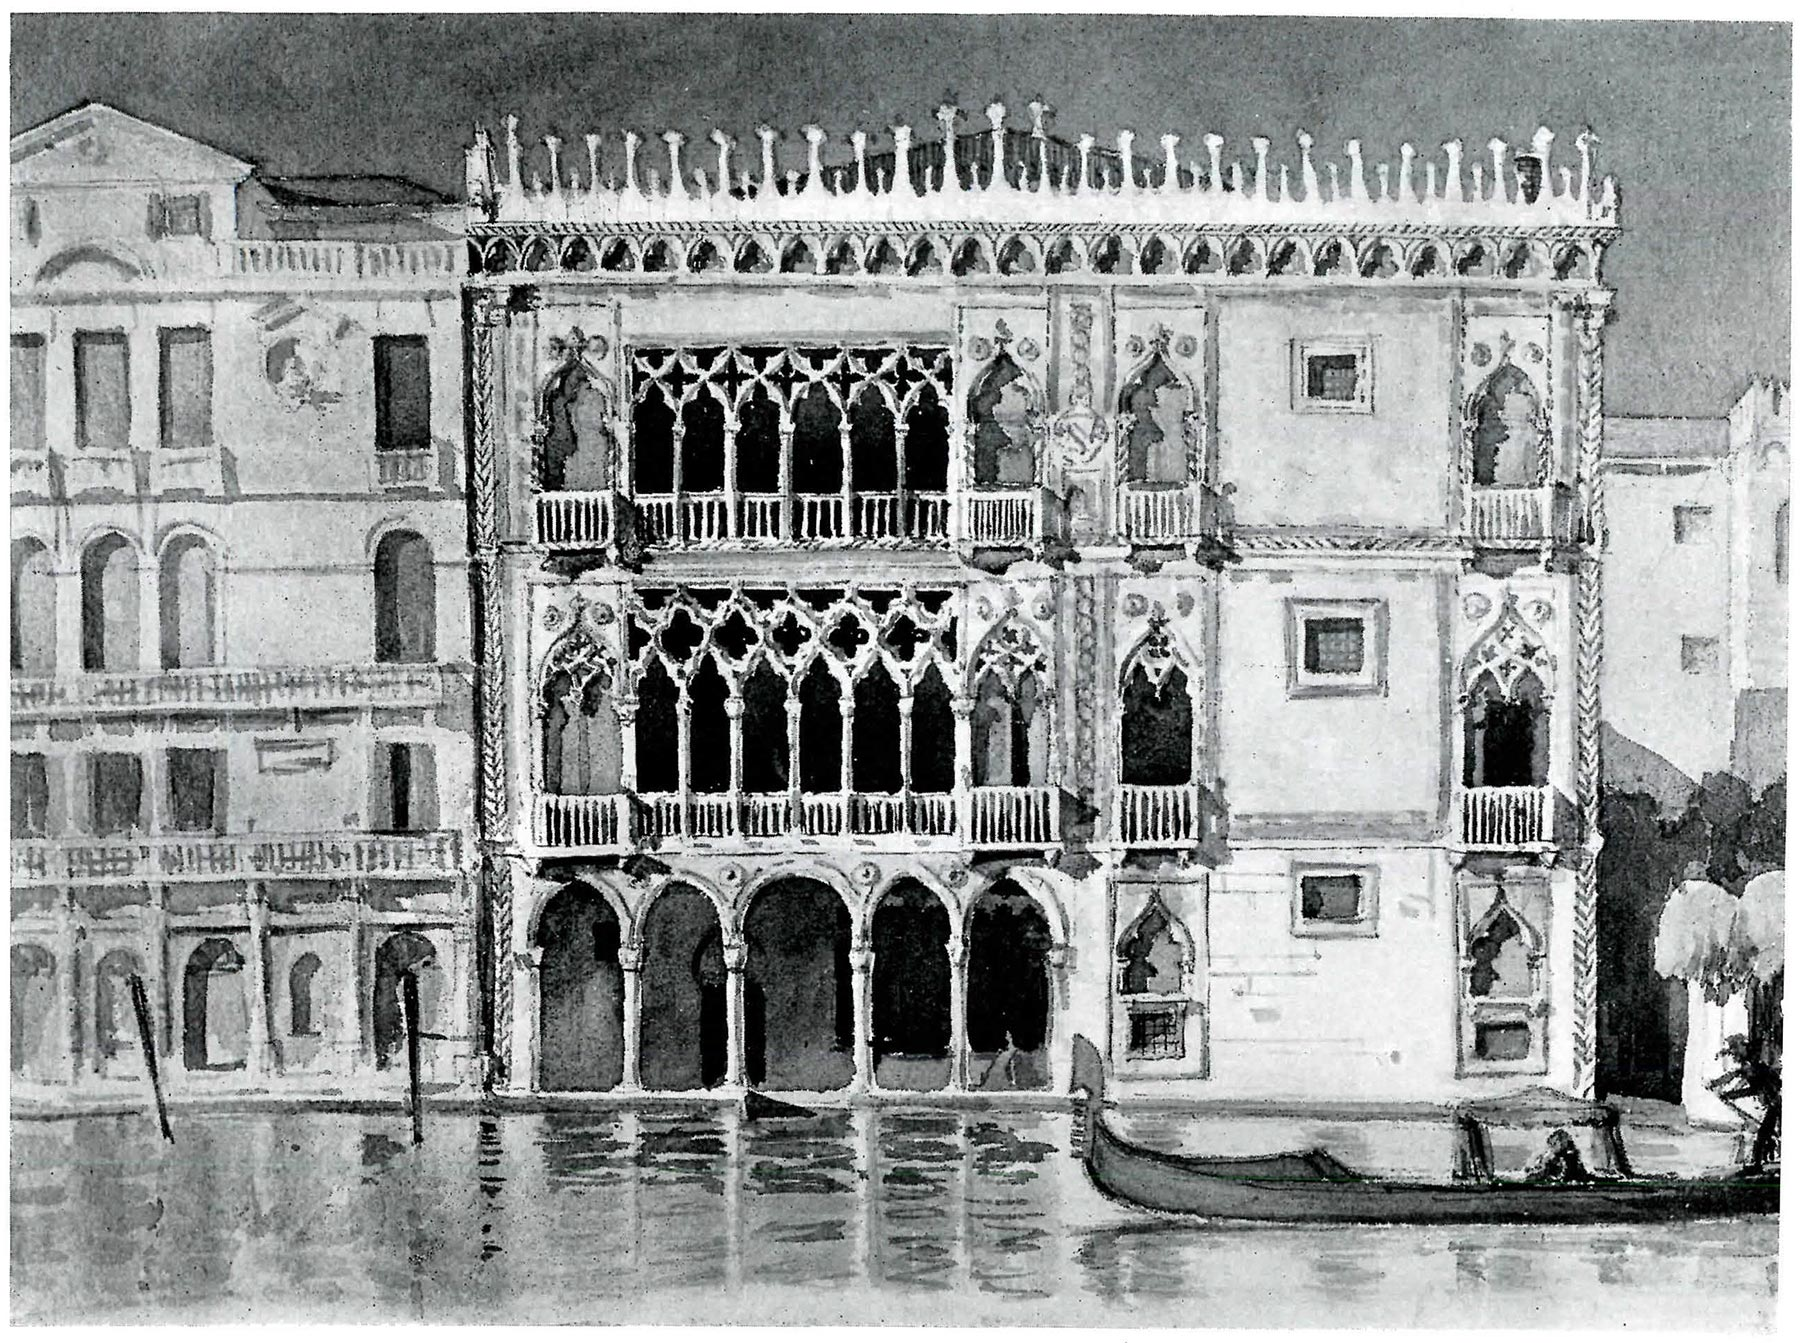 """Ca' d'Oro Venice,"" Elizabeth Kimball Nedved's watercolor of the famous Palazzo Santa Sofia was published in  Pencil Points,  Vol. VIII, No. 4, April 1927."